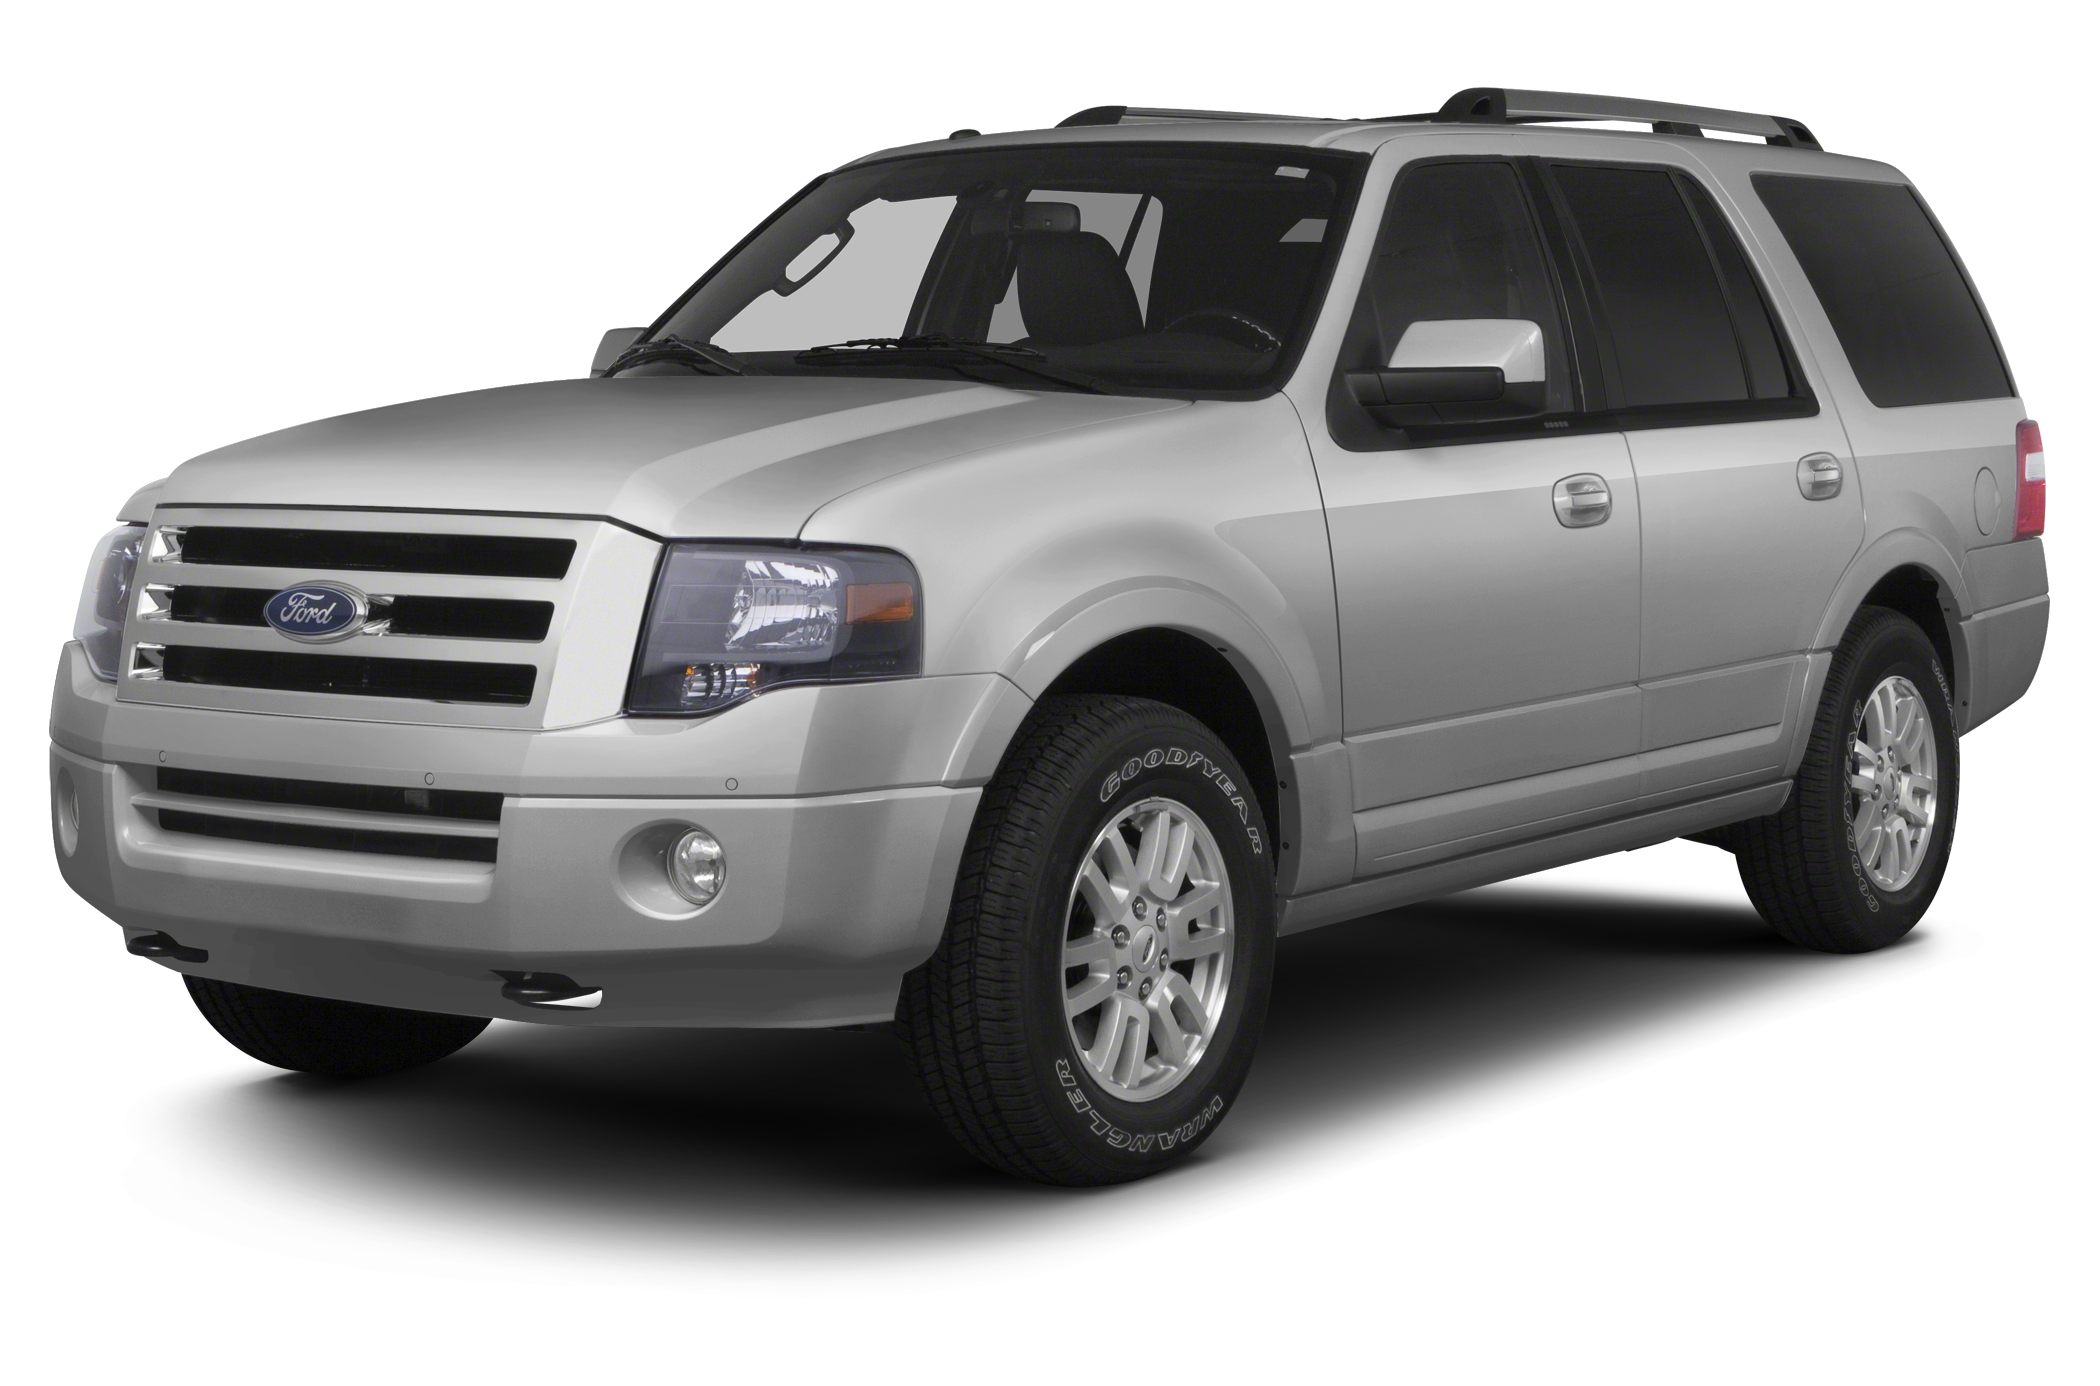 2013 Ford Expedition Limited Miles 57462Color White Platinum Stock 17EX61A VIN 1FMJU1K5XDEF1